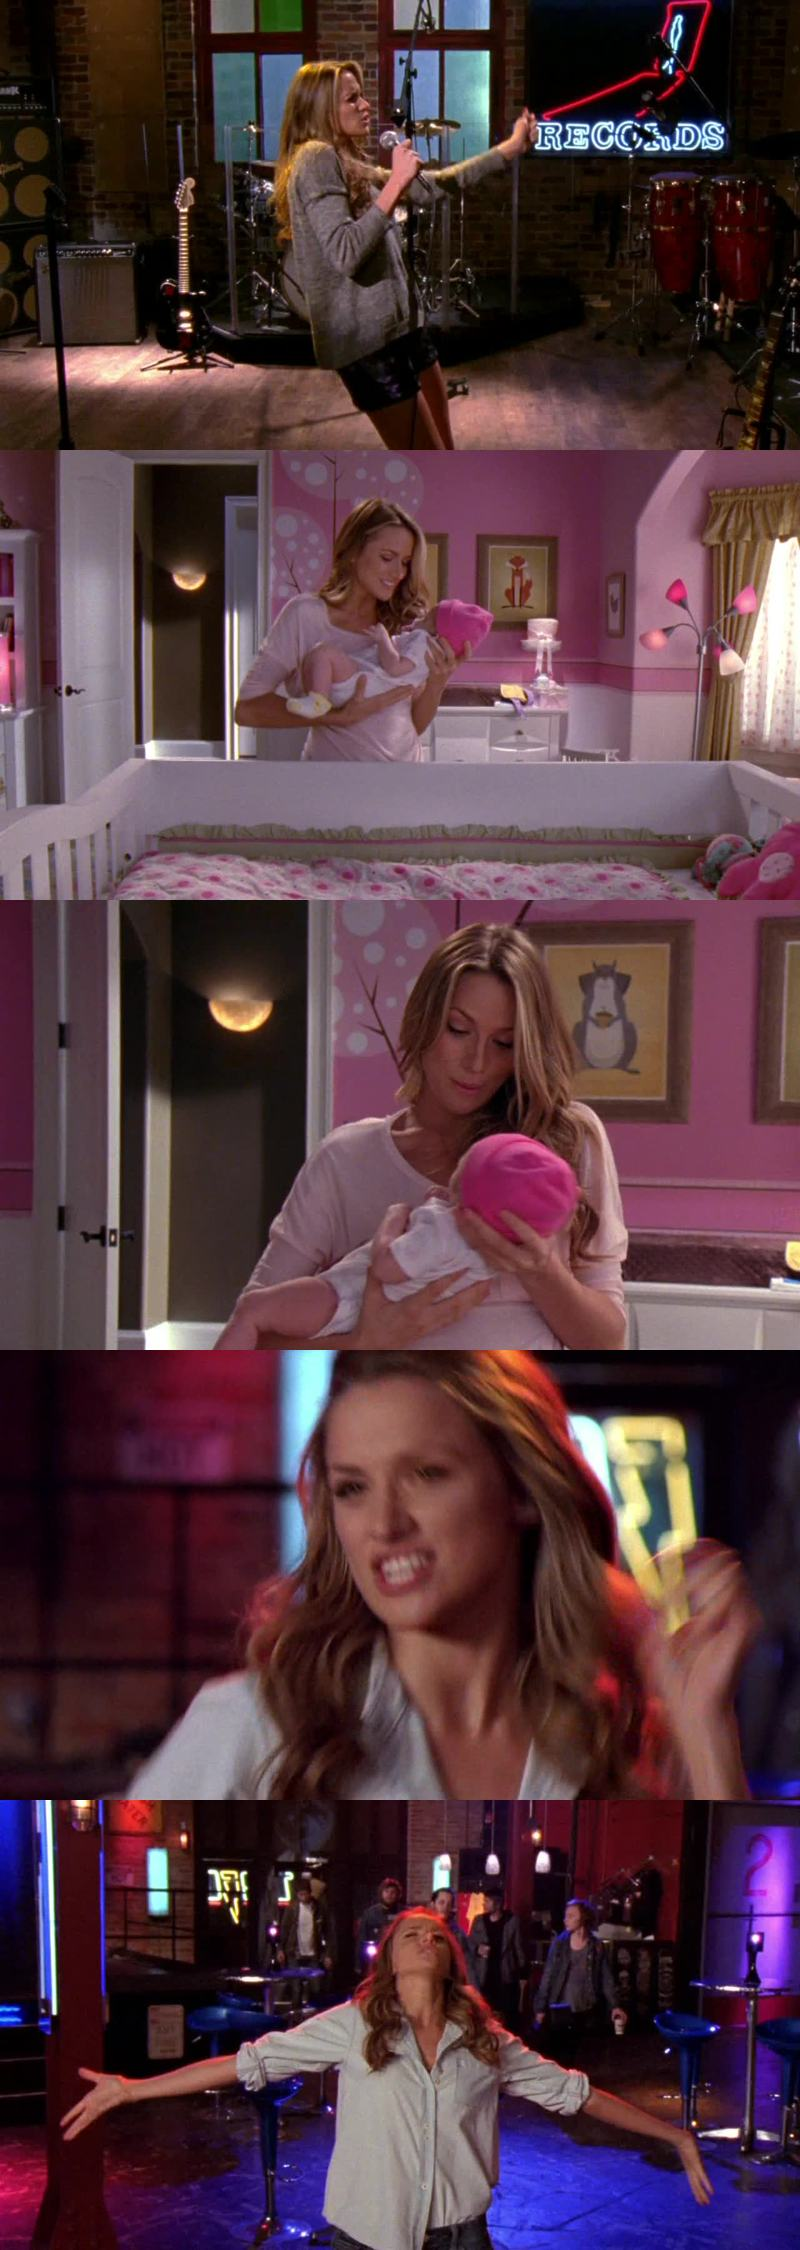 Quinn in this episode was a very accurate representation of me when I'm home alone